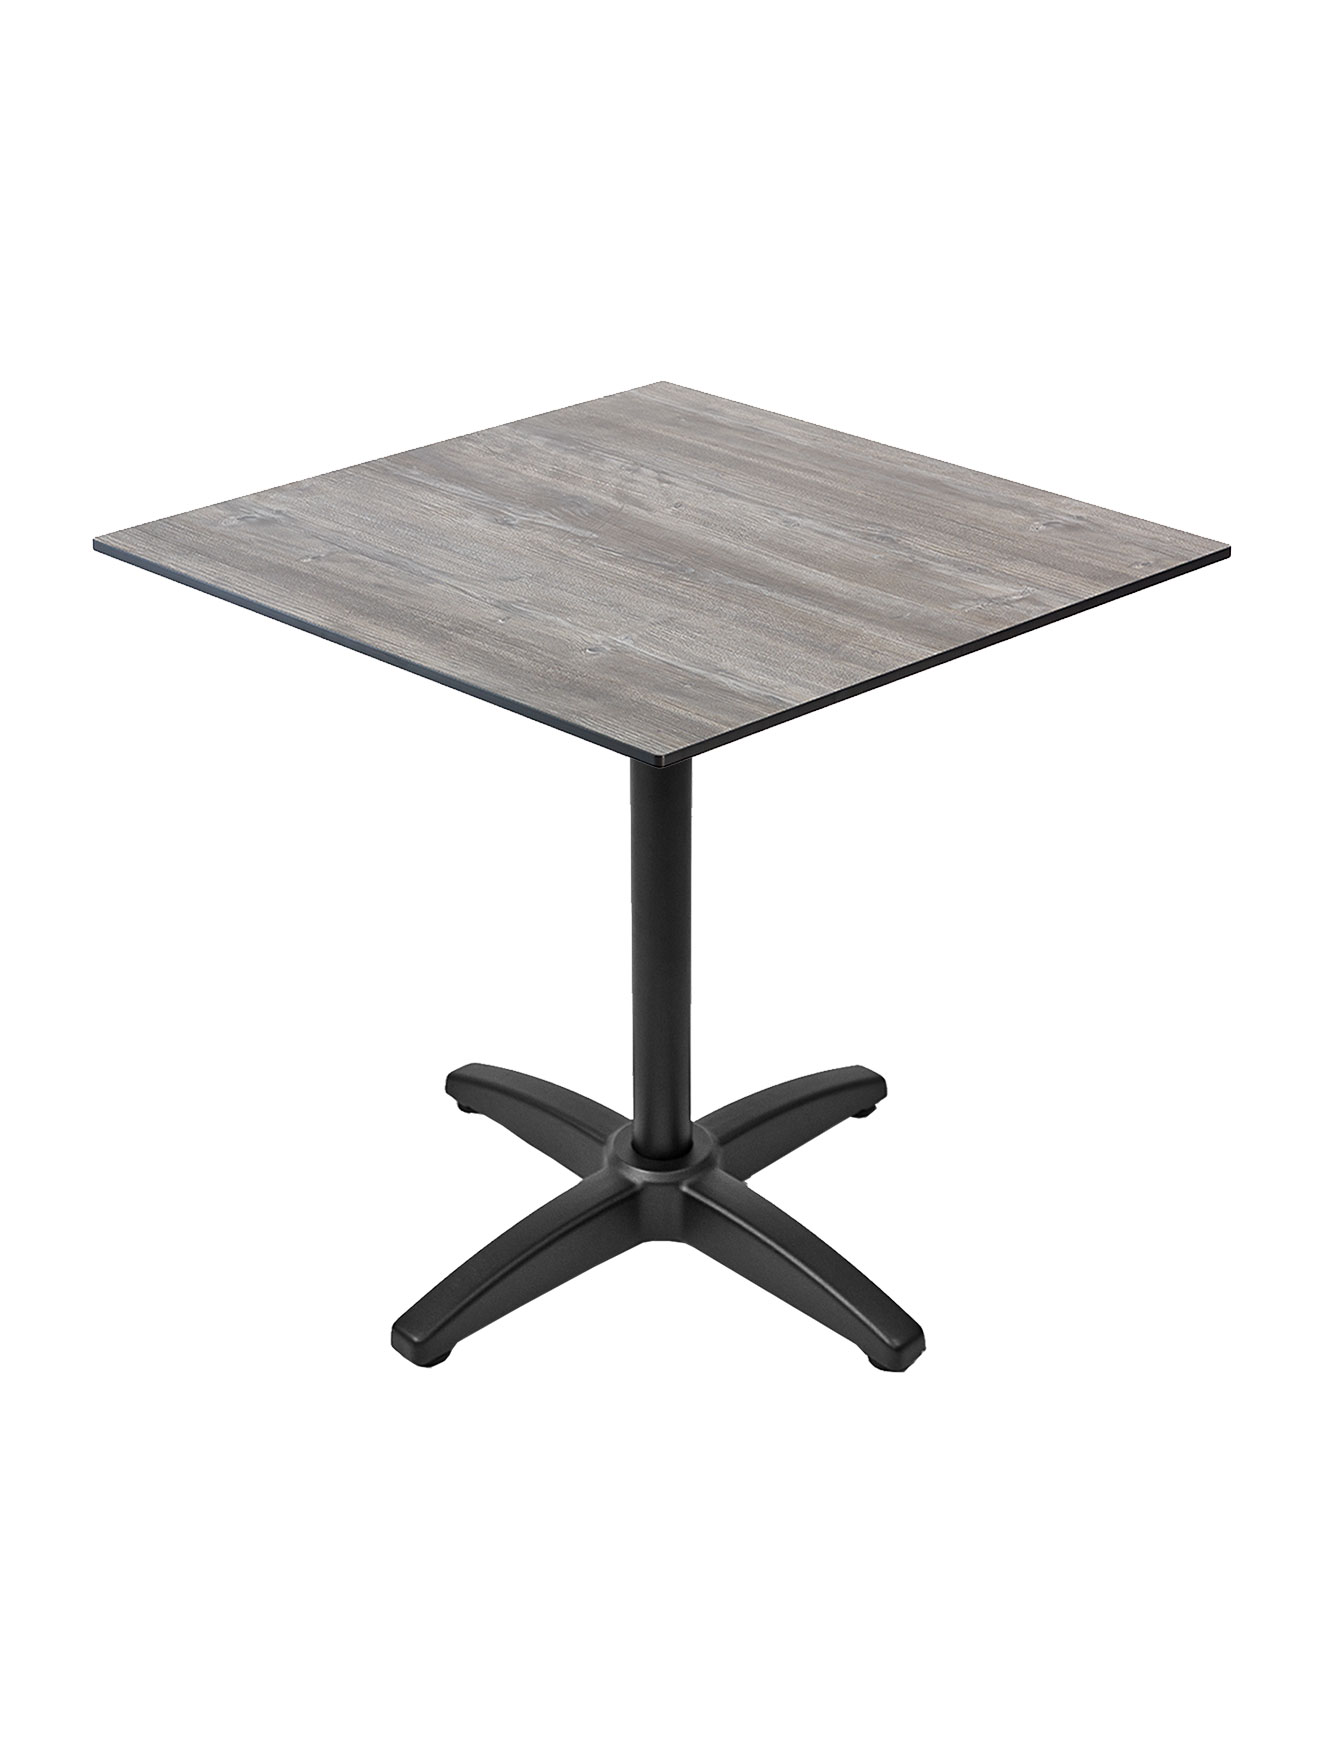 TABATHA TABLE TOPS $119.00-249.00